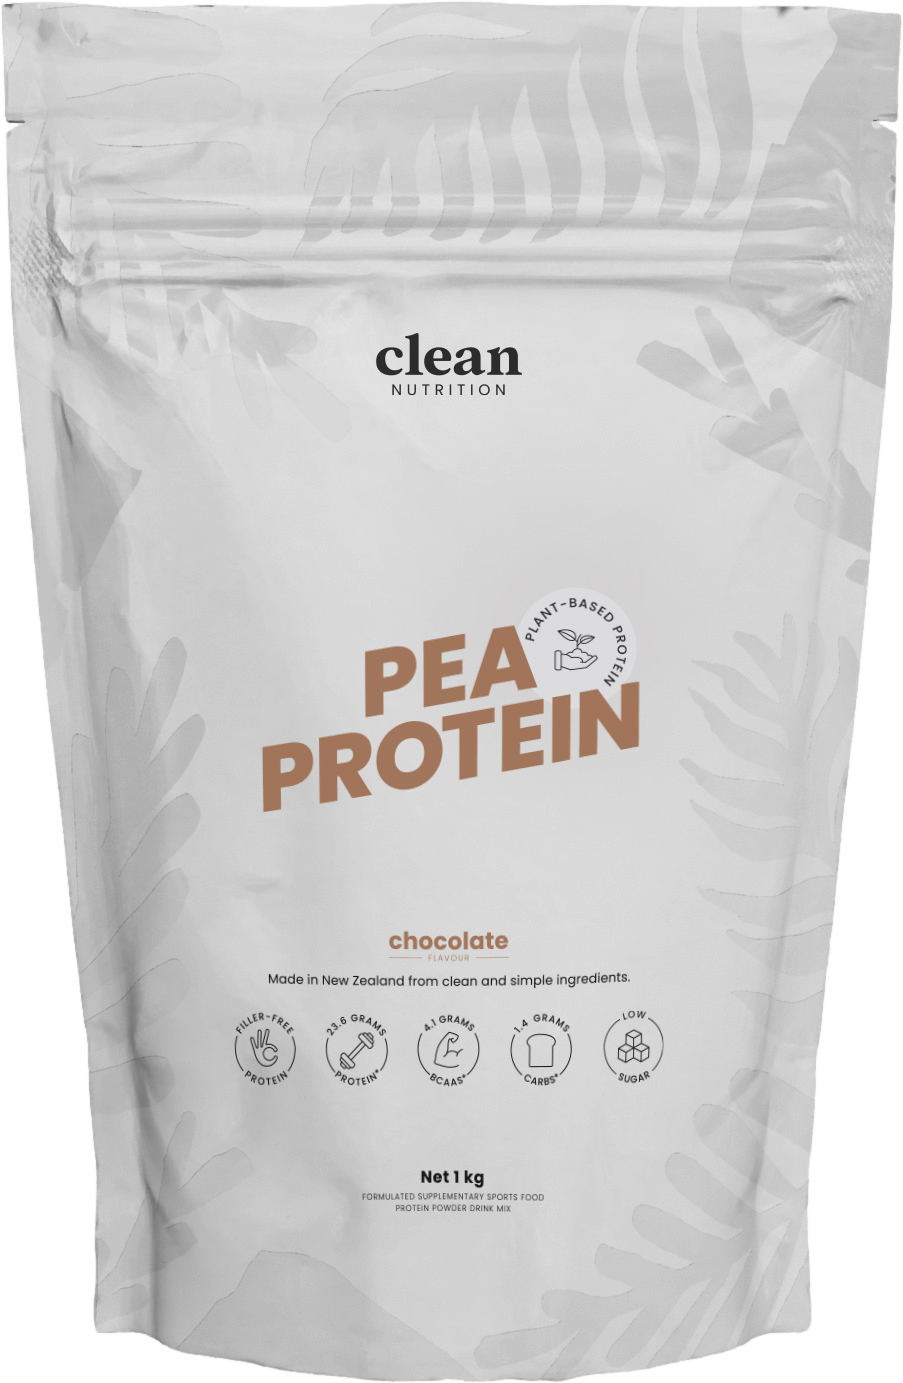 Clean Nutrition Pea Protein 1kg Chocolate